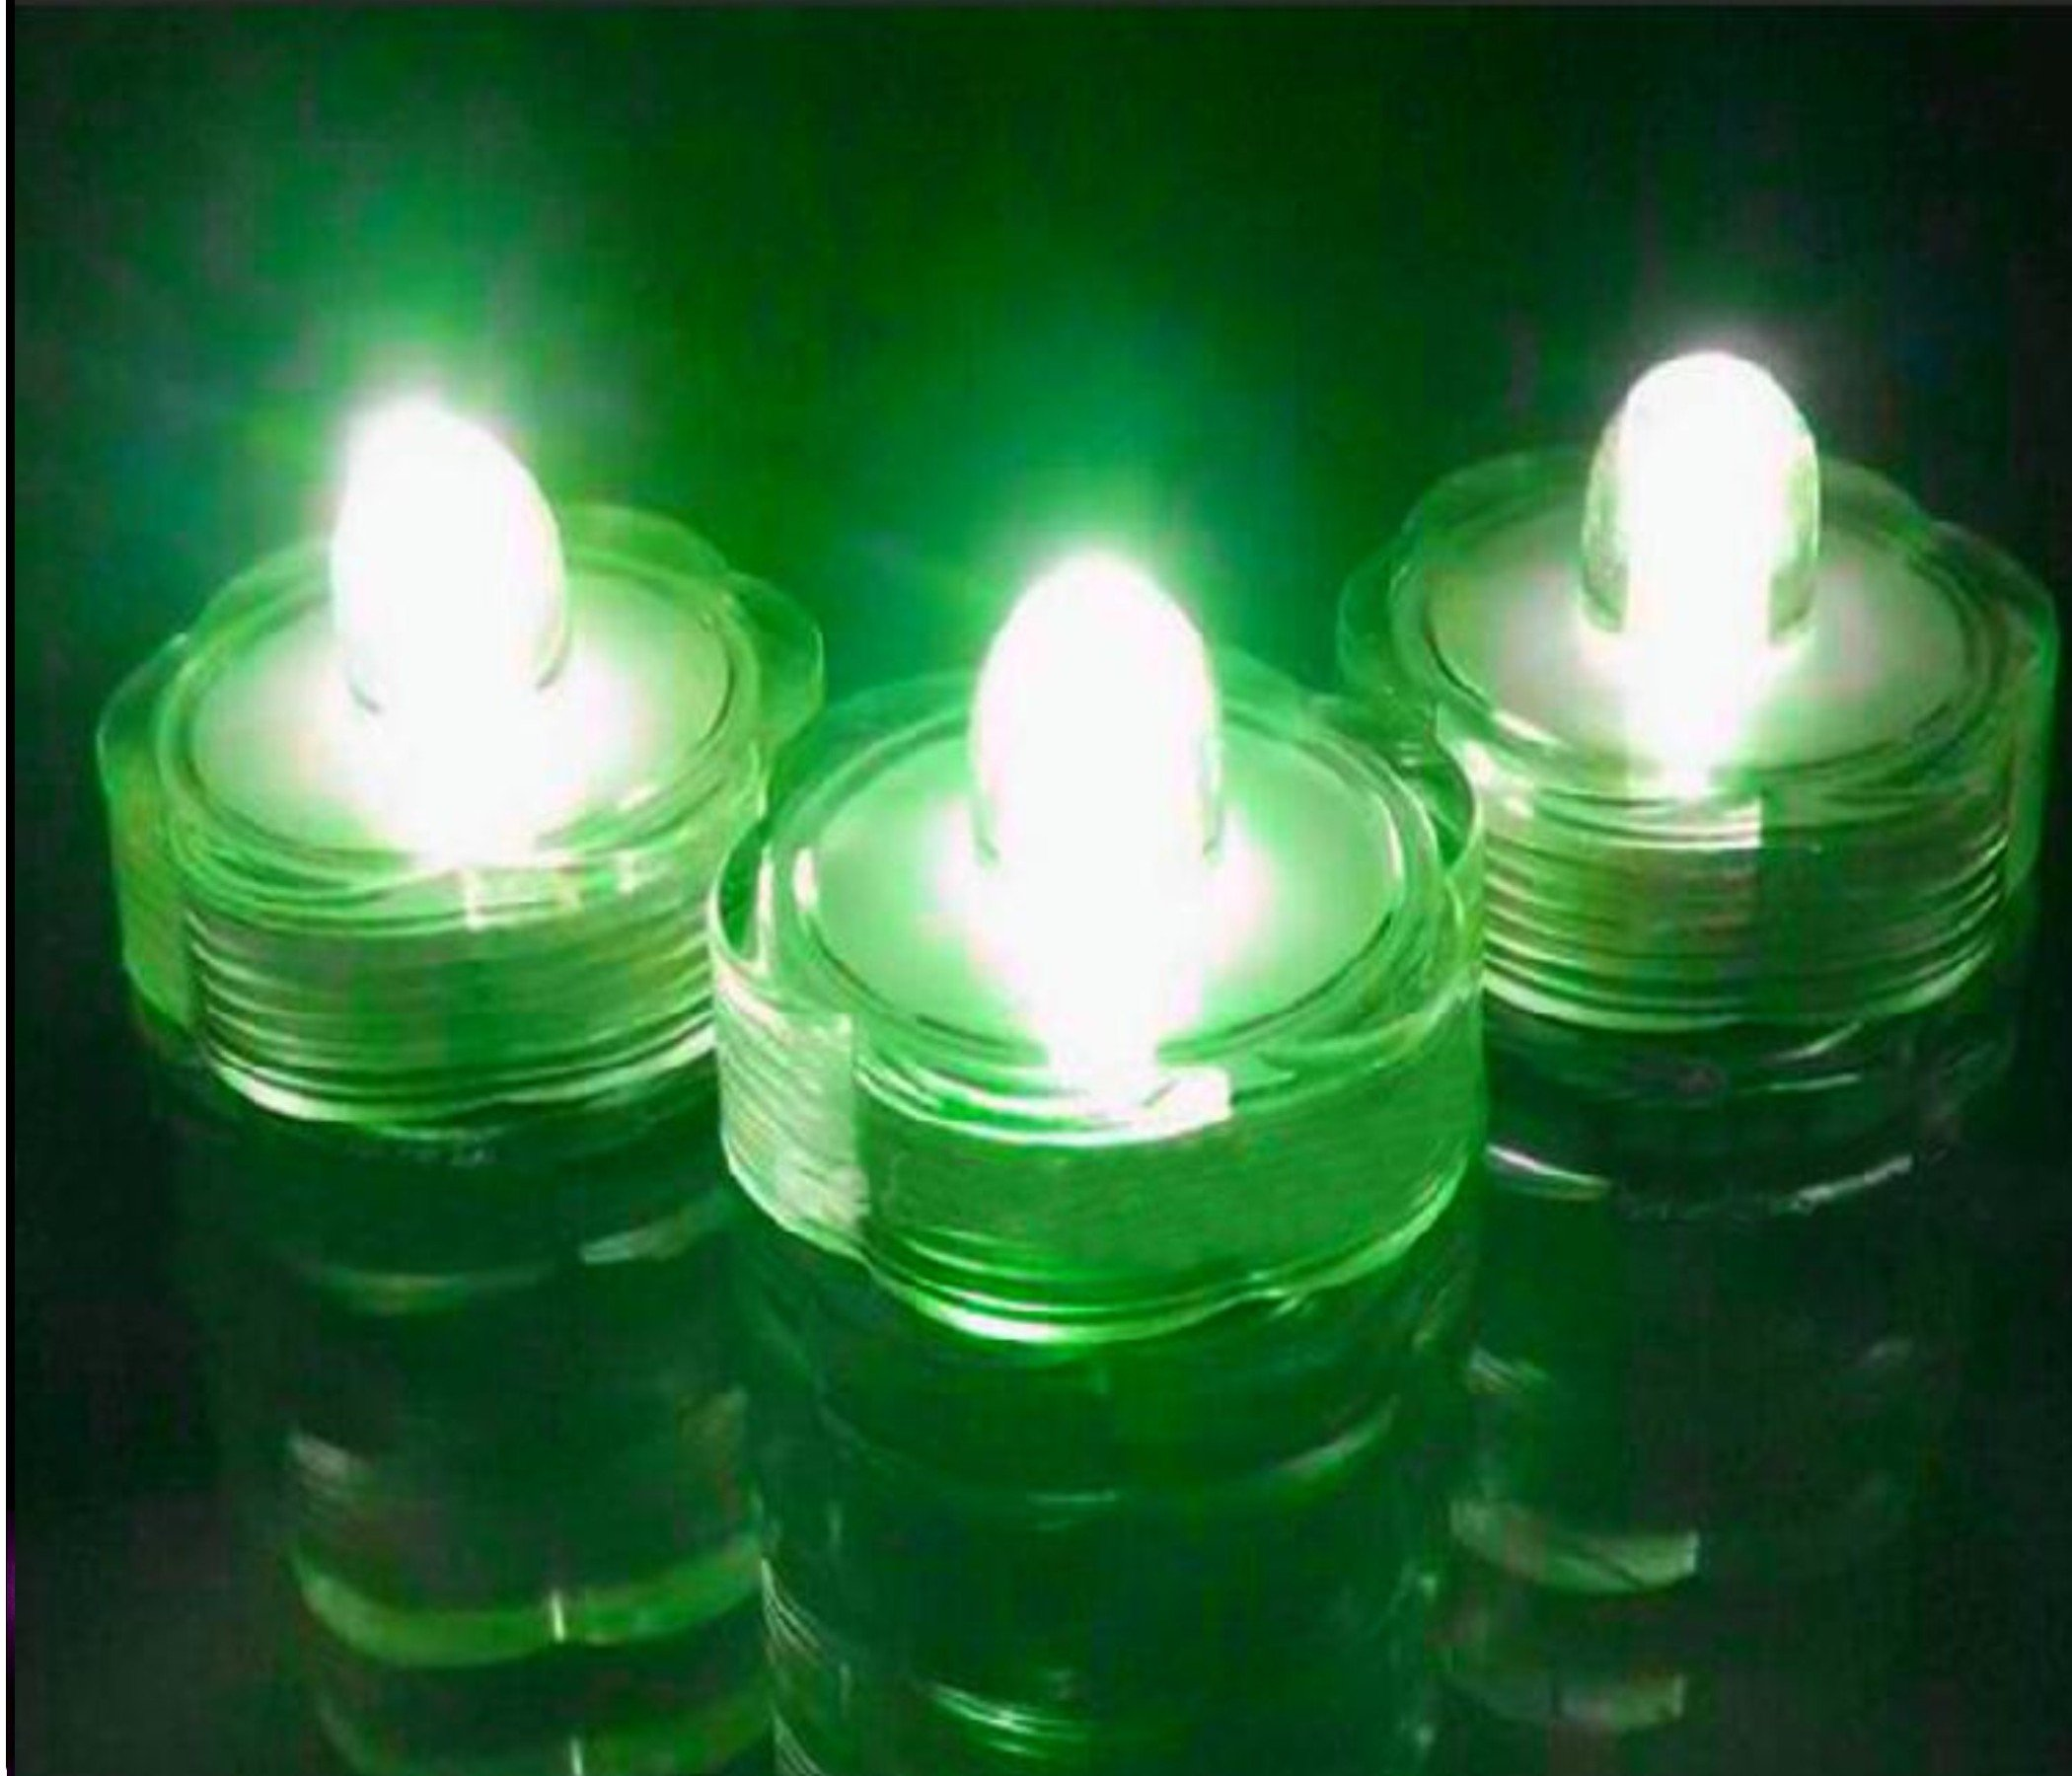 Led Submersible Waterproof candles For Fish Tank Decoration light holiday Xmas Holloween Decoration led light Wedding Floral Decoration Party Tea Light (Set of 108 Green )